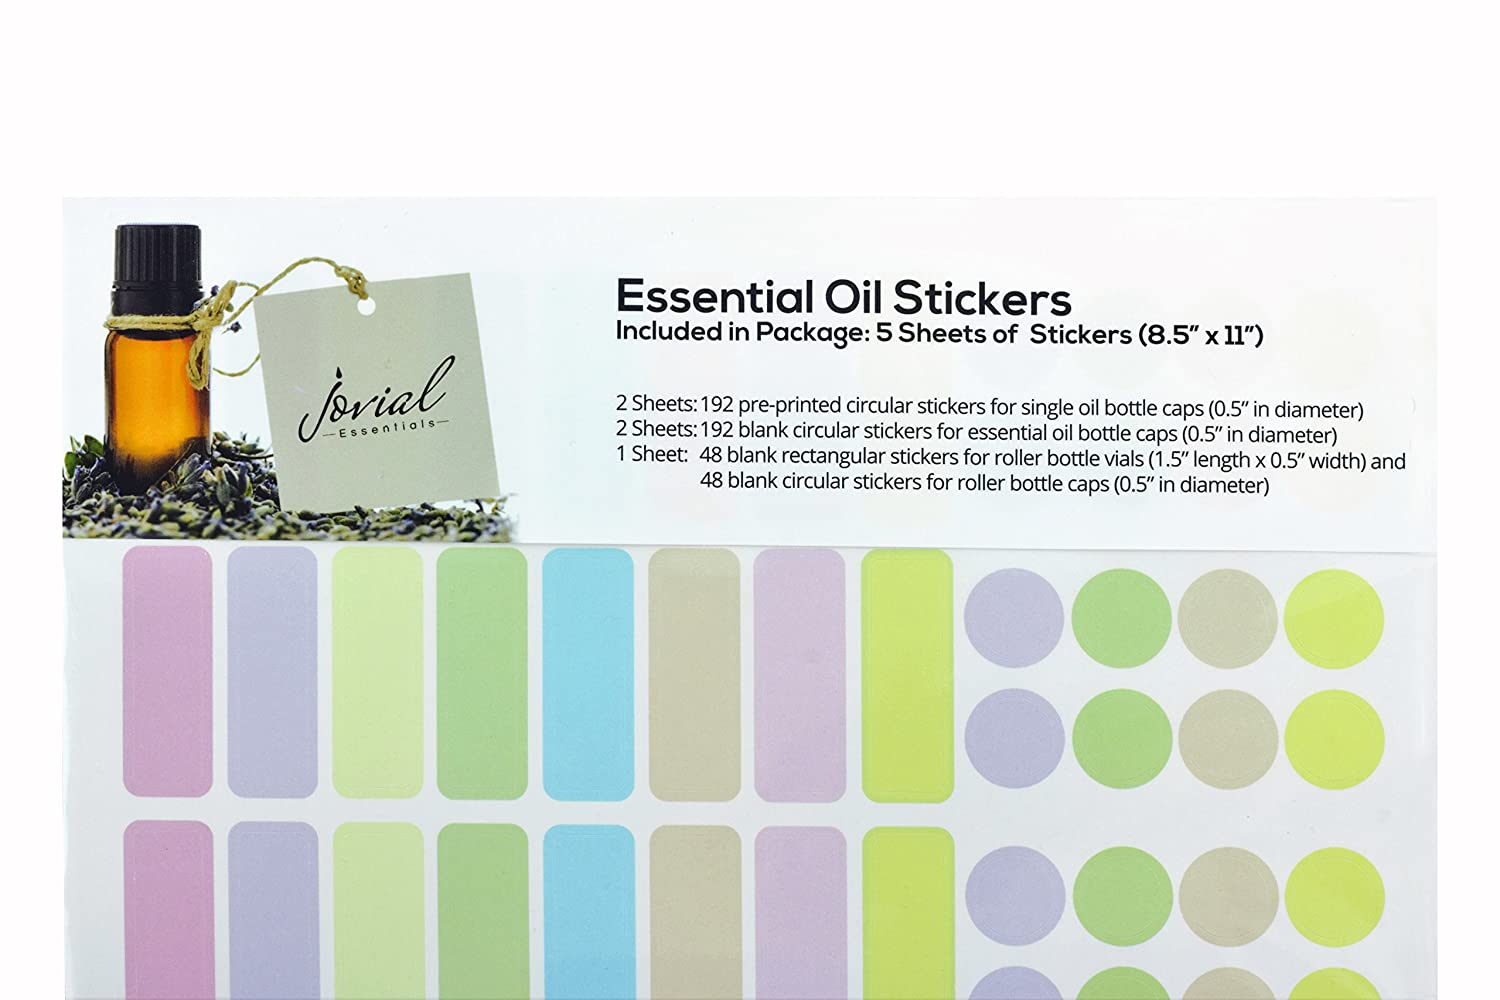 Premium Essential Oil Stickers, 5 Sheets of 864 Stickers by Jovial Essentials, Original Design, Oil and Water Resistant Essential Oil Bottle Cap Pre-Printed and Blank Sticker Labels